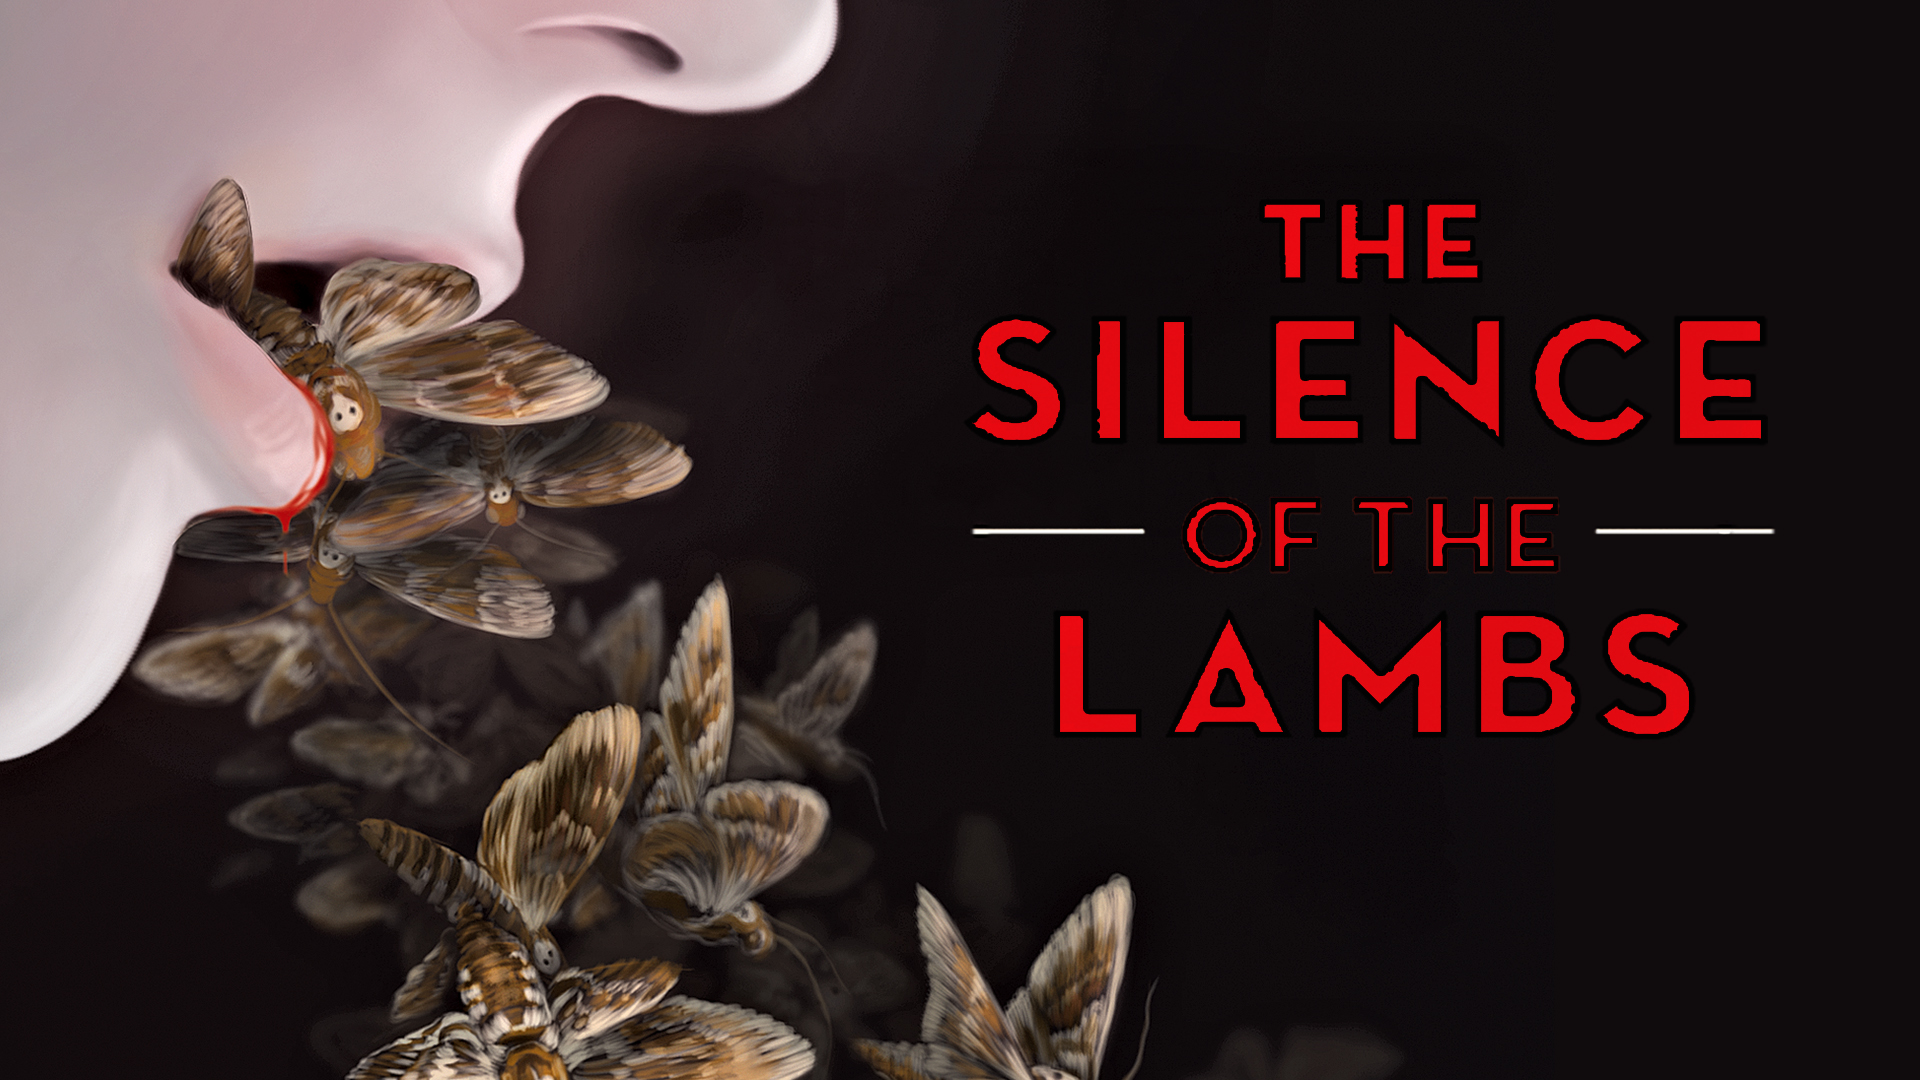 Amazon.com: Watch The Silence of the Lambs | Prime Video